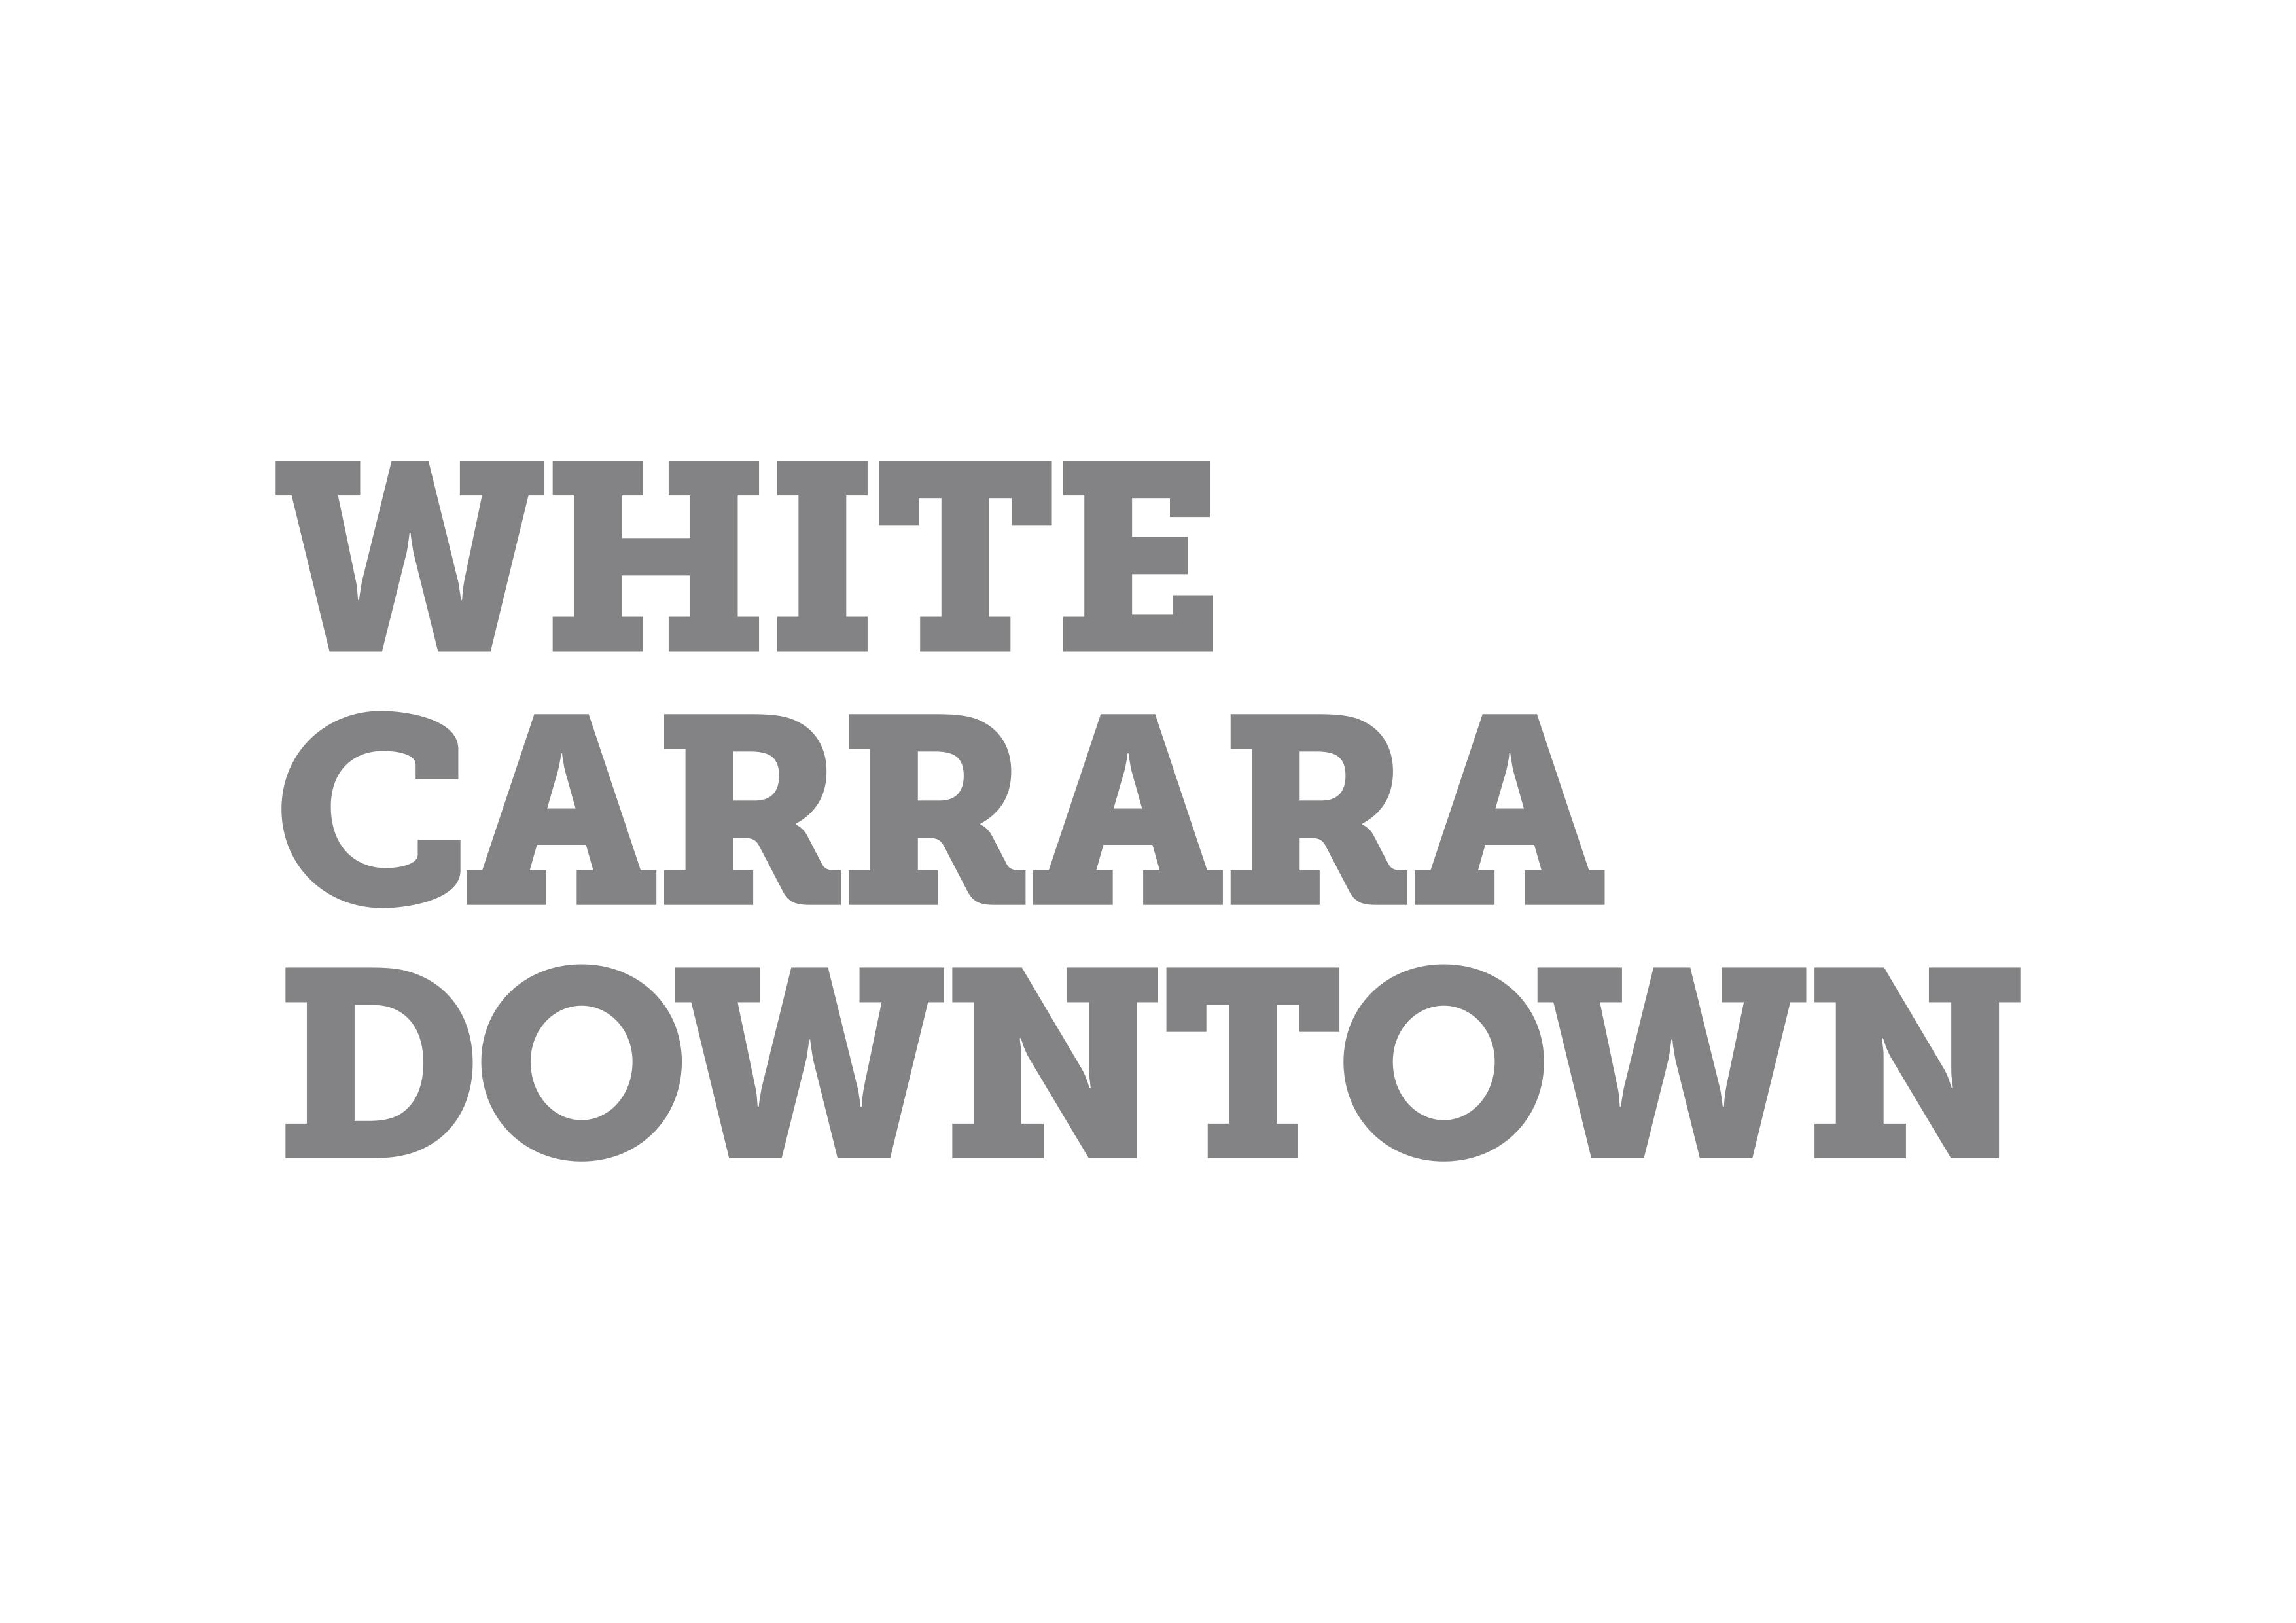 WHITE CARRARA DOWNTOWN: From 14th to 18th June